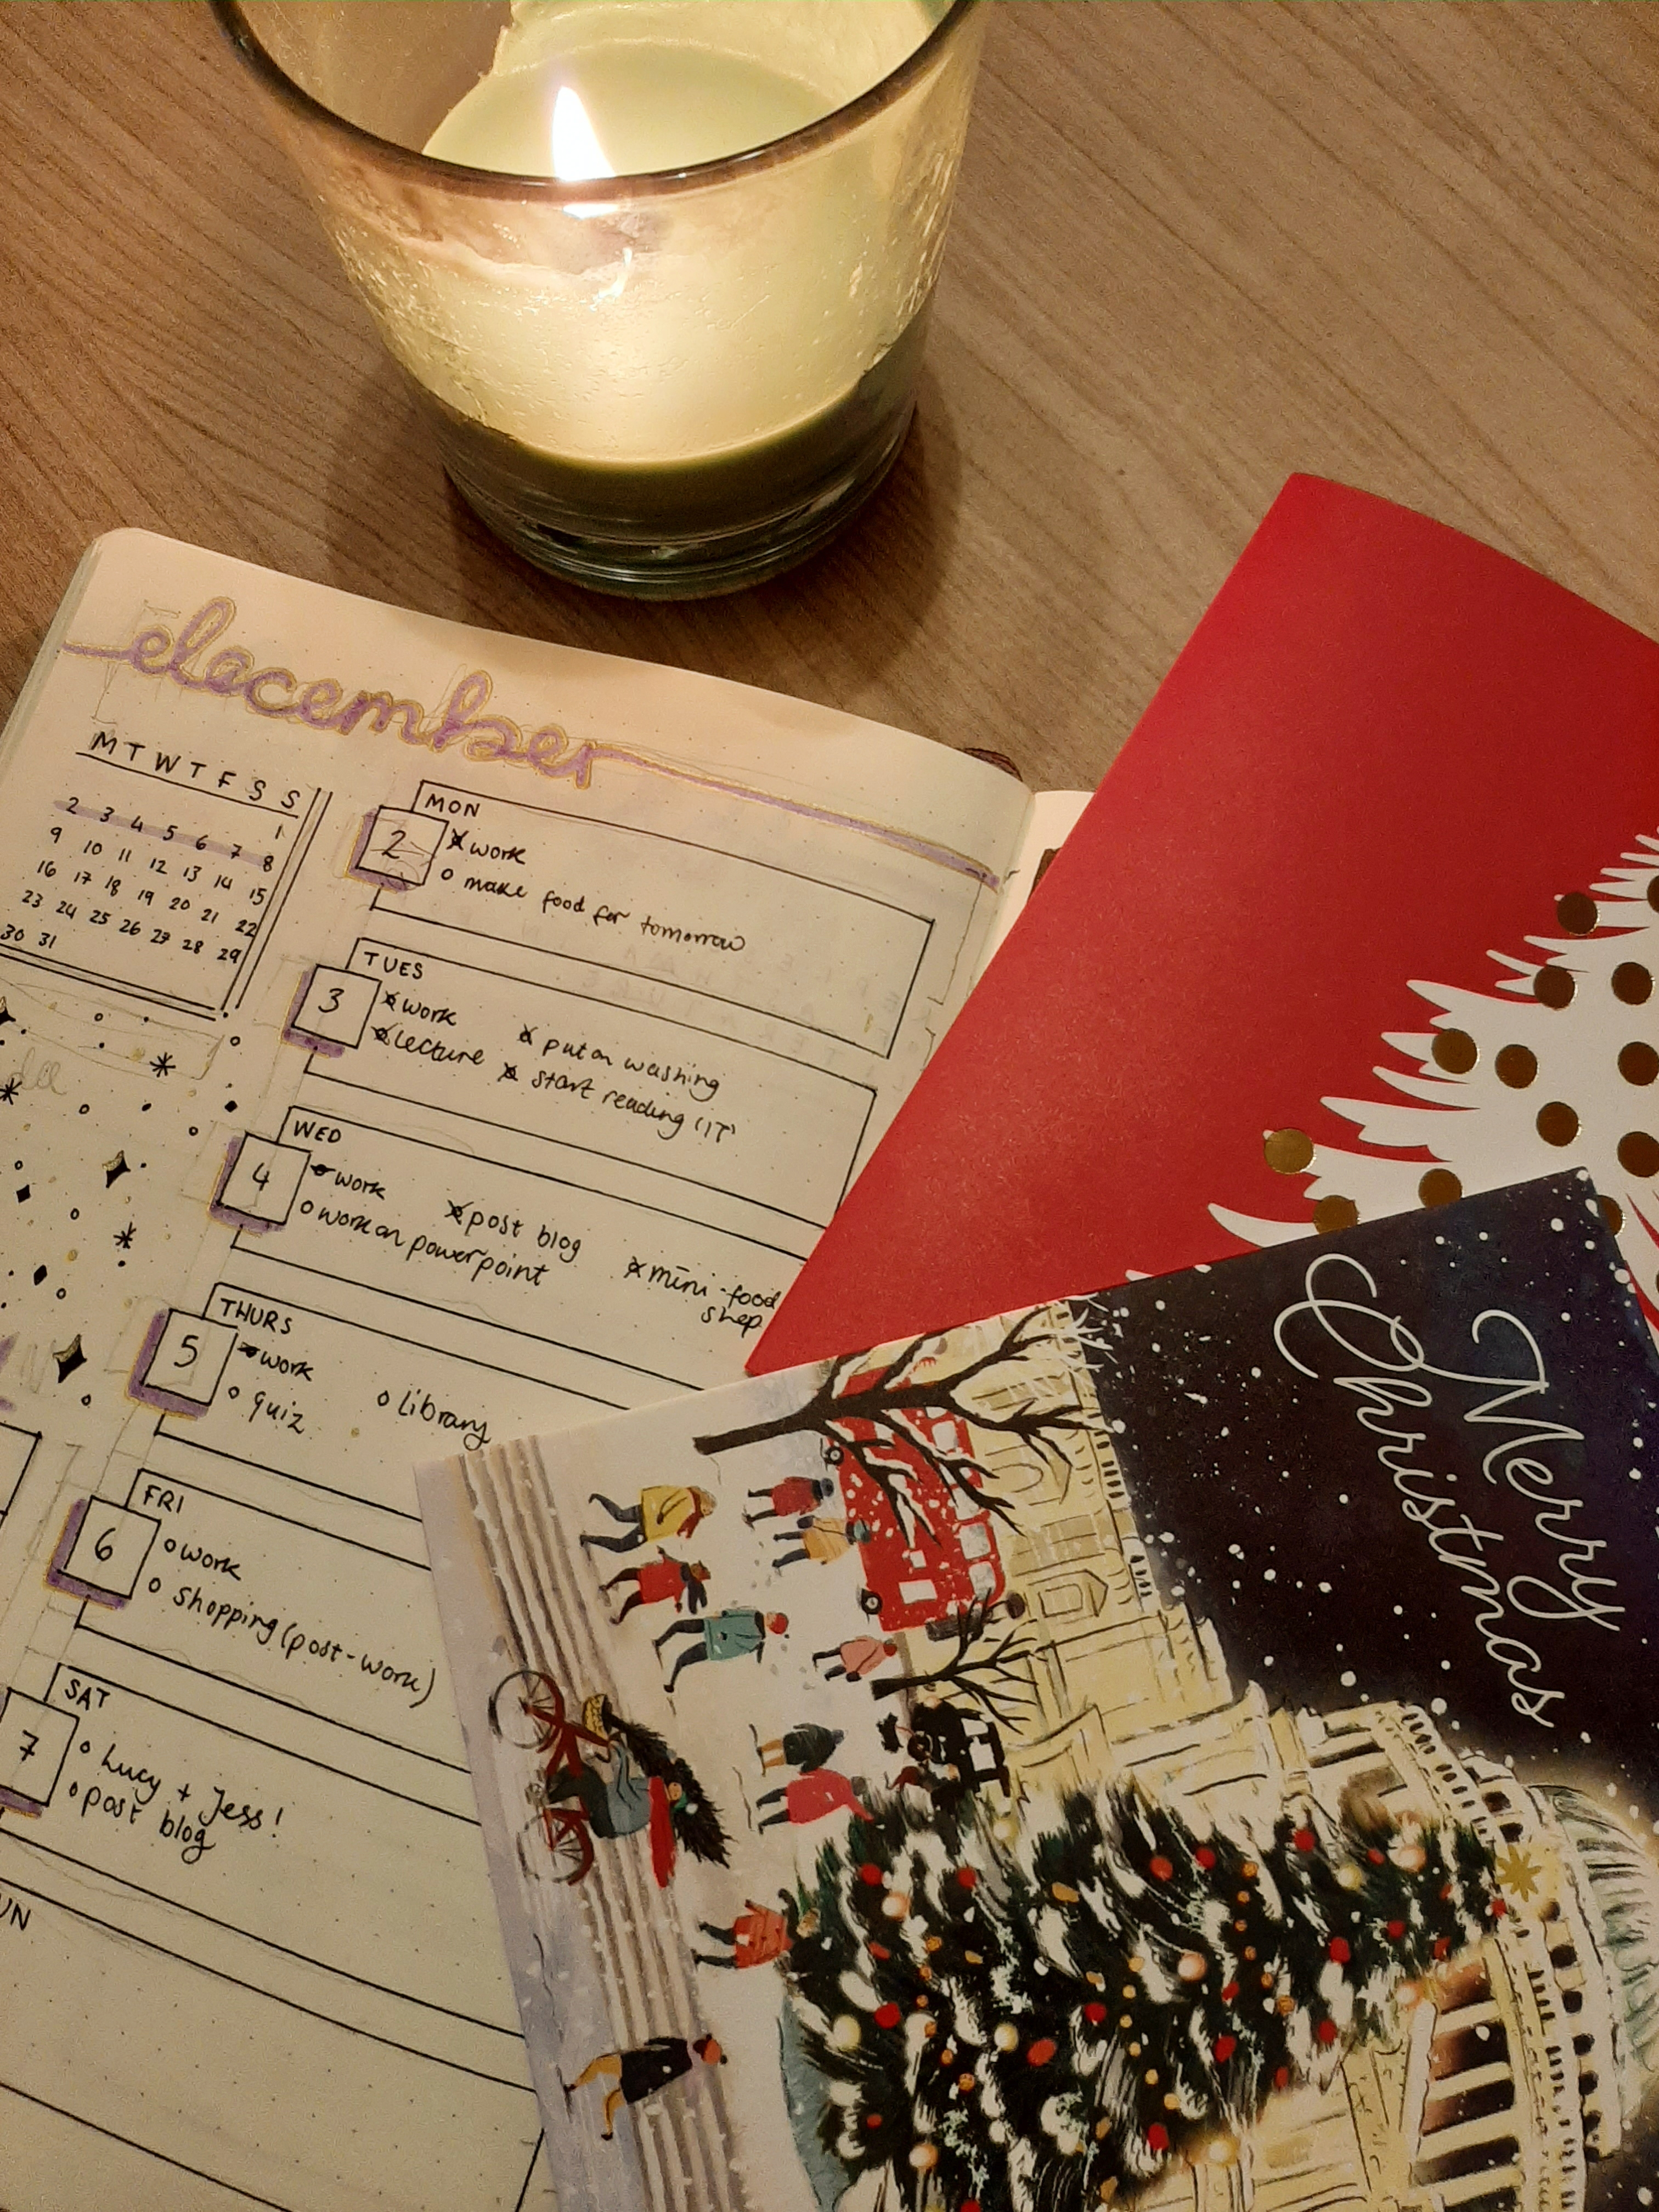 Christmas cards & bullet journaling, with a lit candle